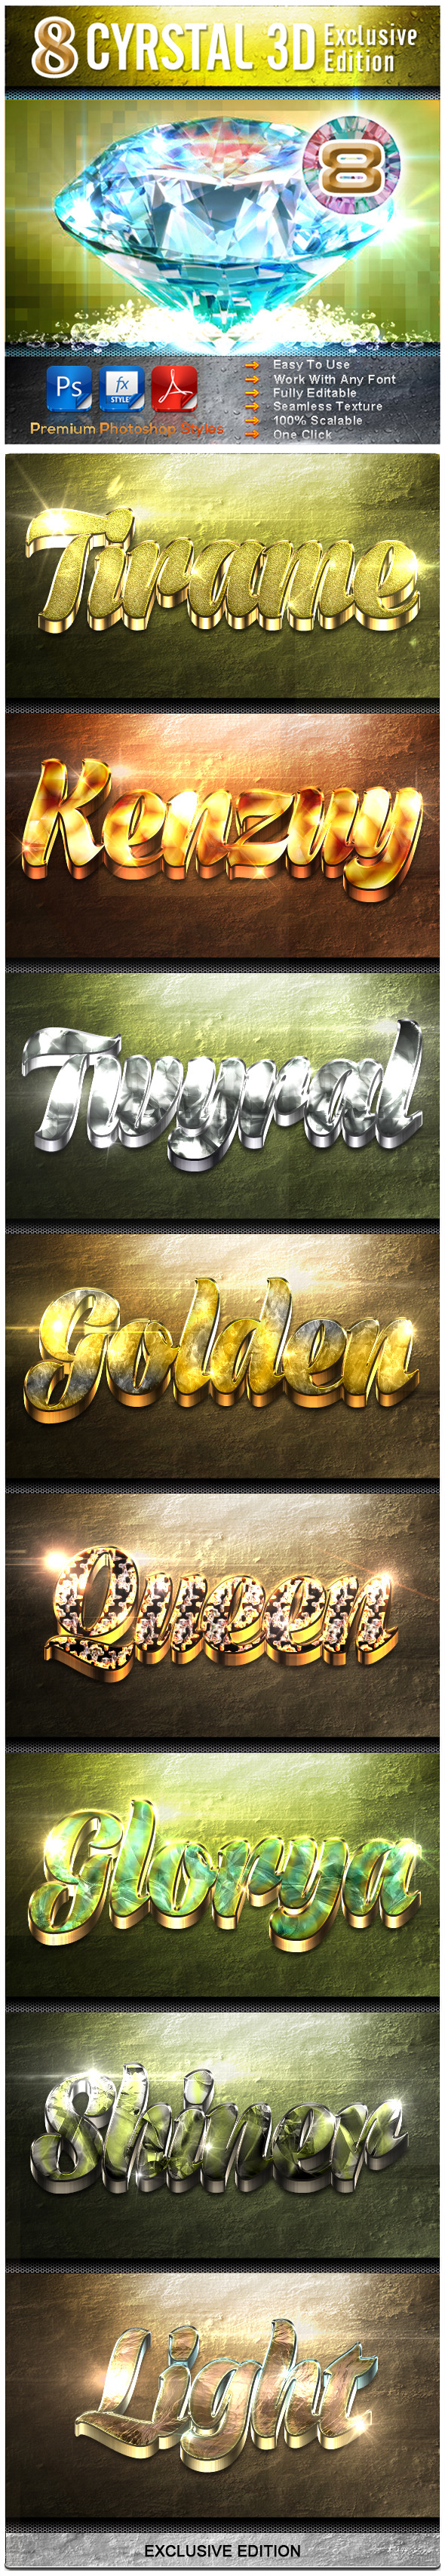 GraphicRiver 8 Cyrstal 3D Exclusive Edition Vol.8 9502239